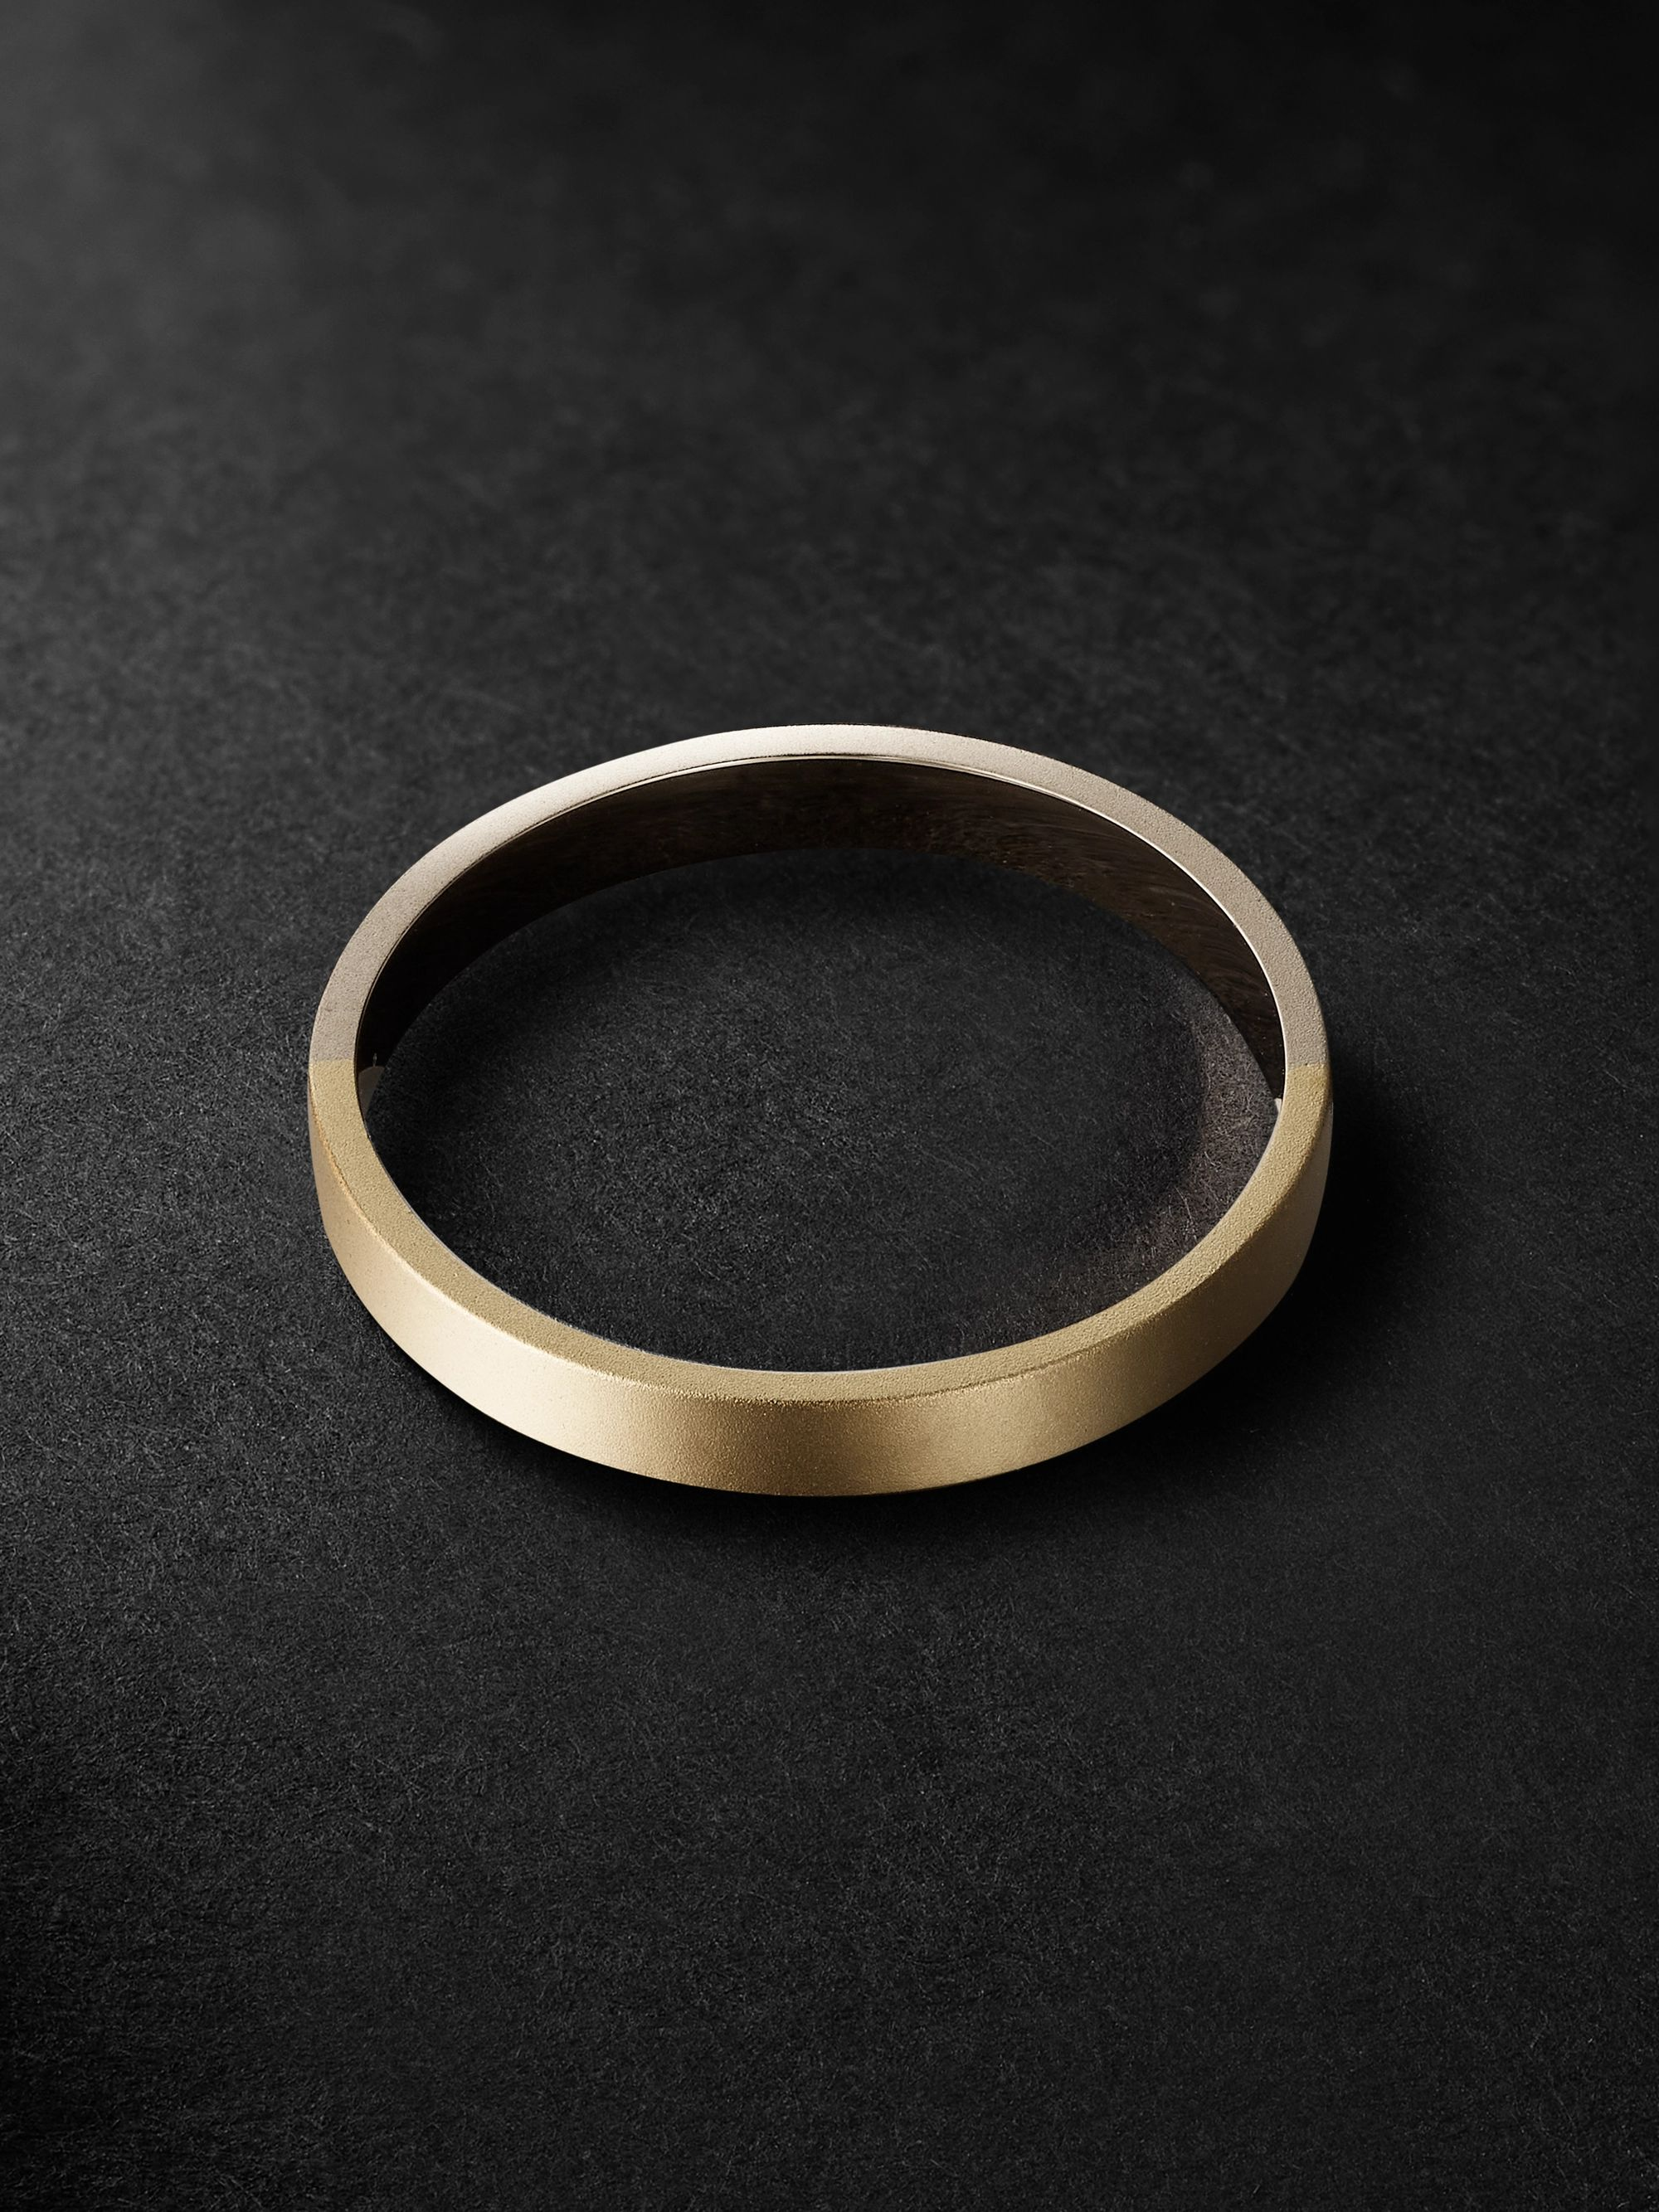 MIANSAI Edge Matte 14-Karat White and Yellow Gold Ring